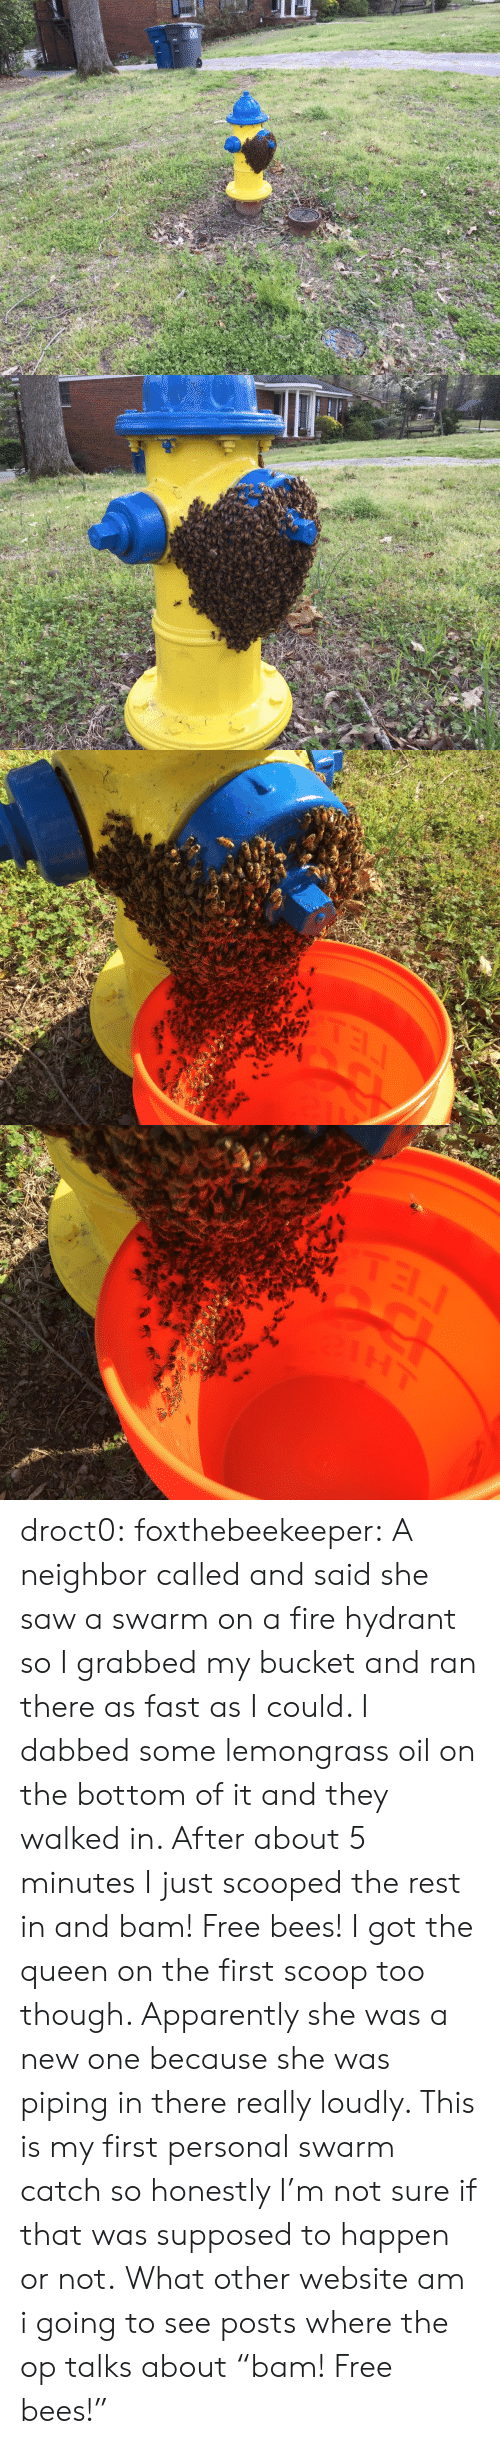 "Bucket: TEL droct0: foxthebeekeeper:  A neighbor called and said she saw a swarm on a fire hydrant so I grabbed my bucket and ran there as fast as I could. I dabbed some lemongrass oil on the bottom of it and they walked in. After about 5 minutes I just scooped the rest in and bam! Free bees!  I got the queen on the first scoop too though. Apparently she was a new one because she was piping in there really loudly. This is my first personal swarm catch so honestly I'm not sure if that was supposed to happen or not.   What other website am i going to see posts where the op talks about ""bam! Free bees!"""